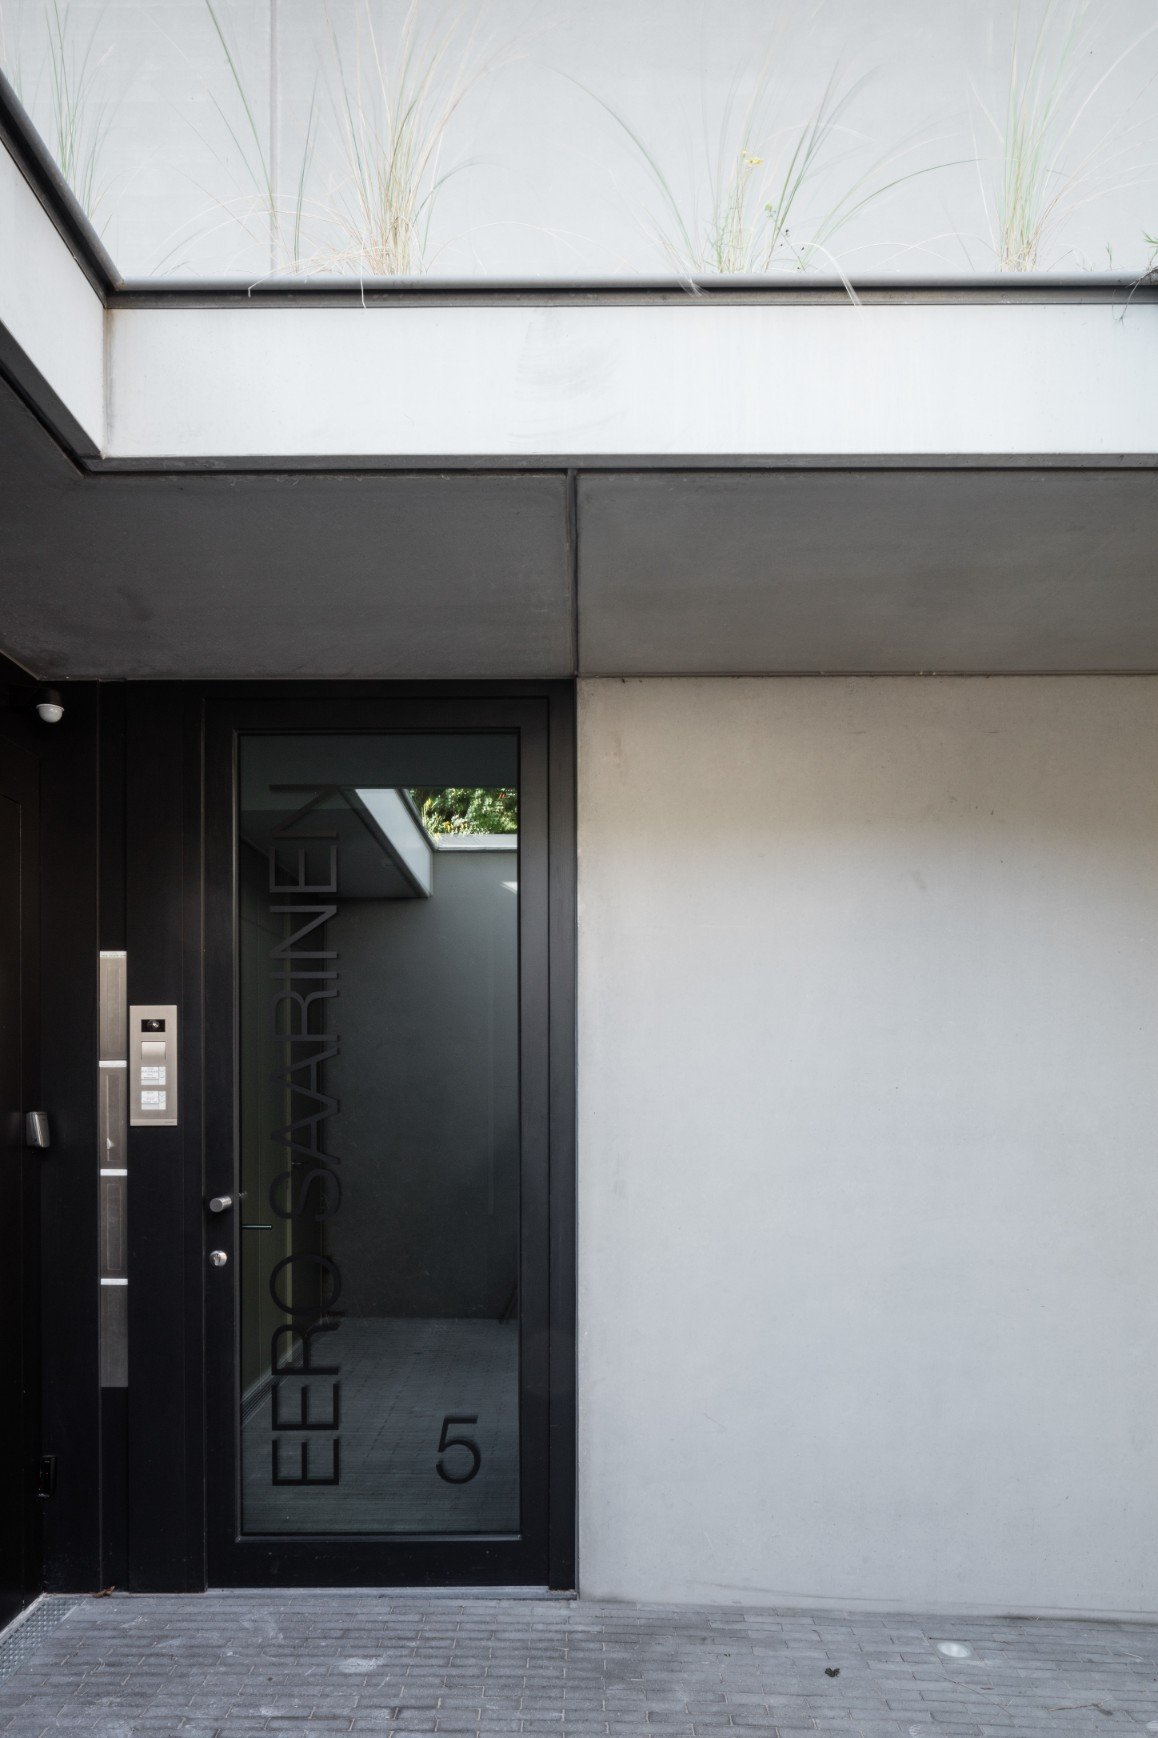 Rietveldprojects-saarinen-appartement-design-architectuur-kust-tvdv7.jpg